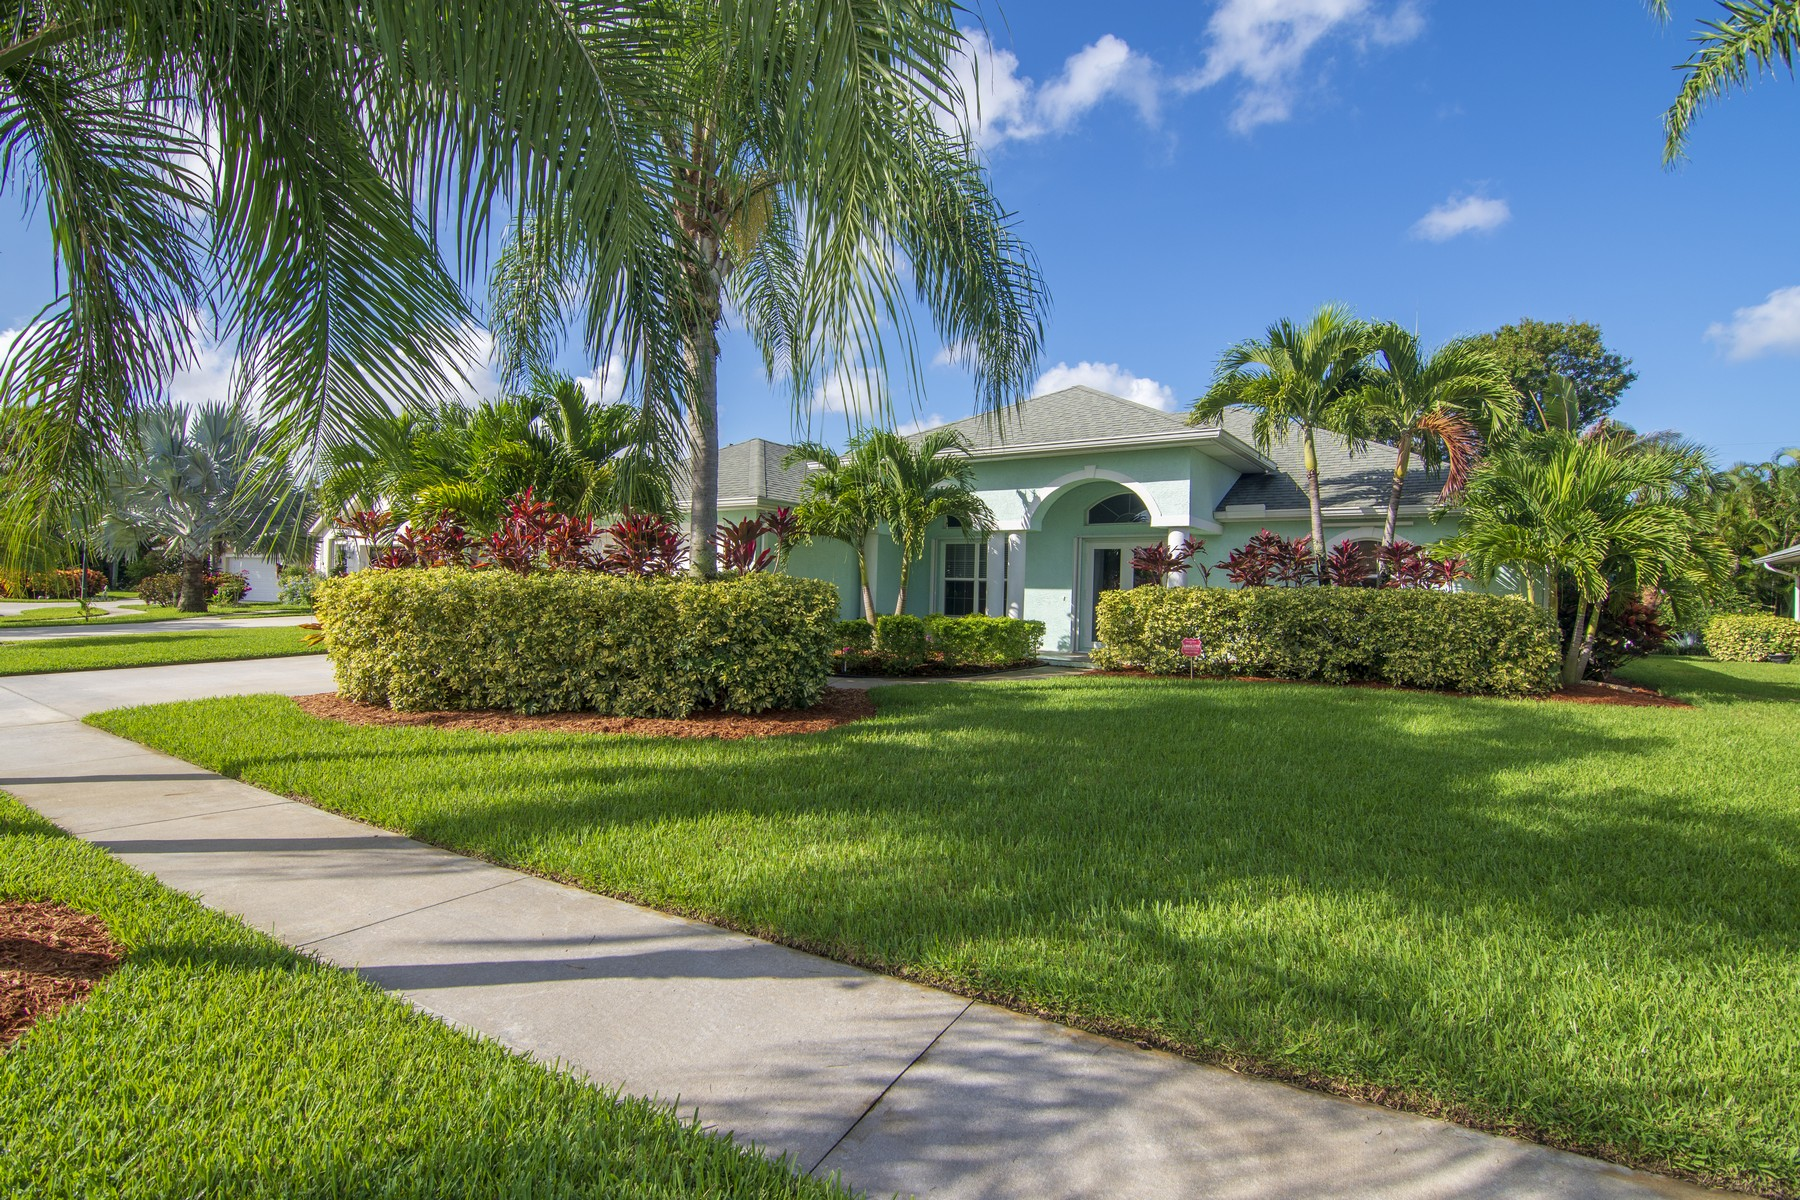 Single Family Homes for Sale at Light and Bright Beautiful Pool Home 645 23rd Avenue Vero Beach, Florida 32962 United States